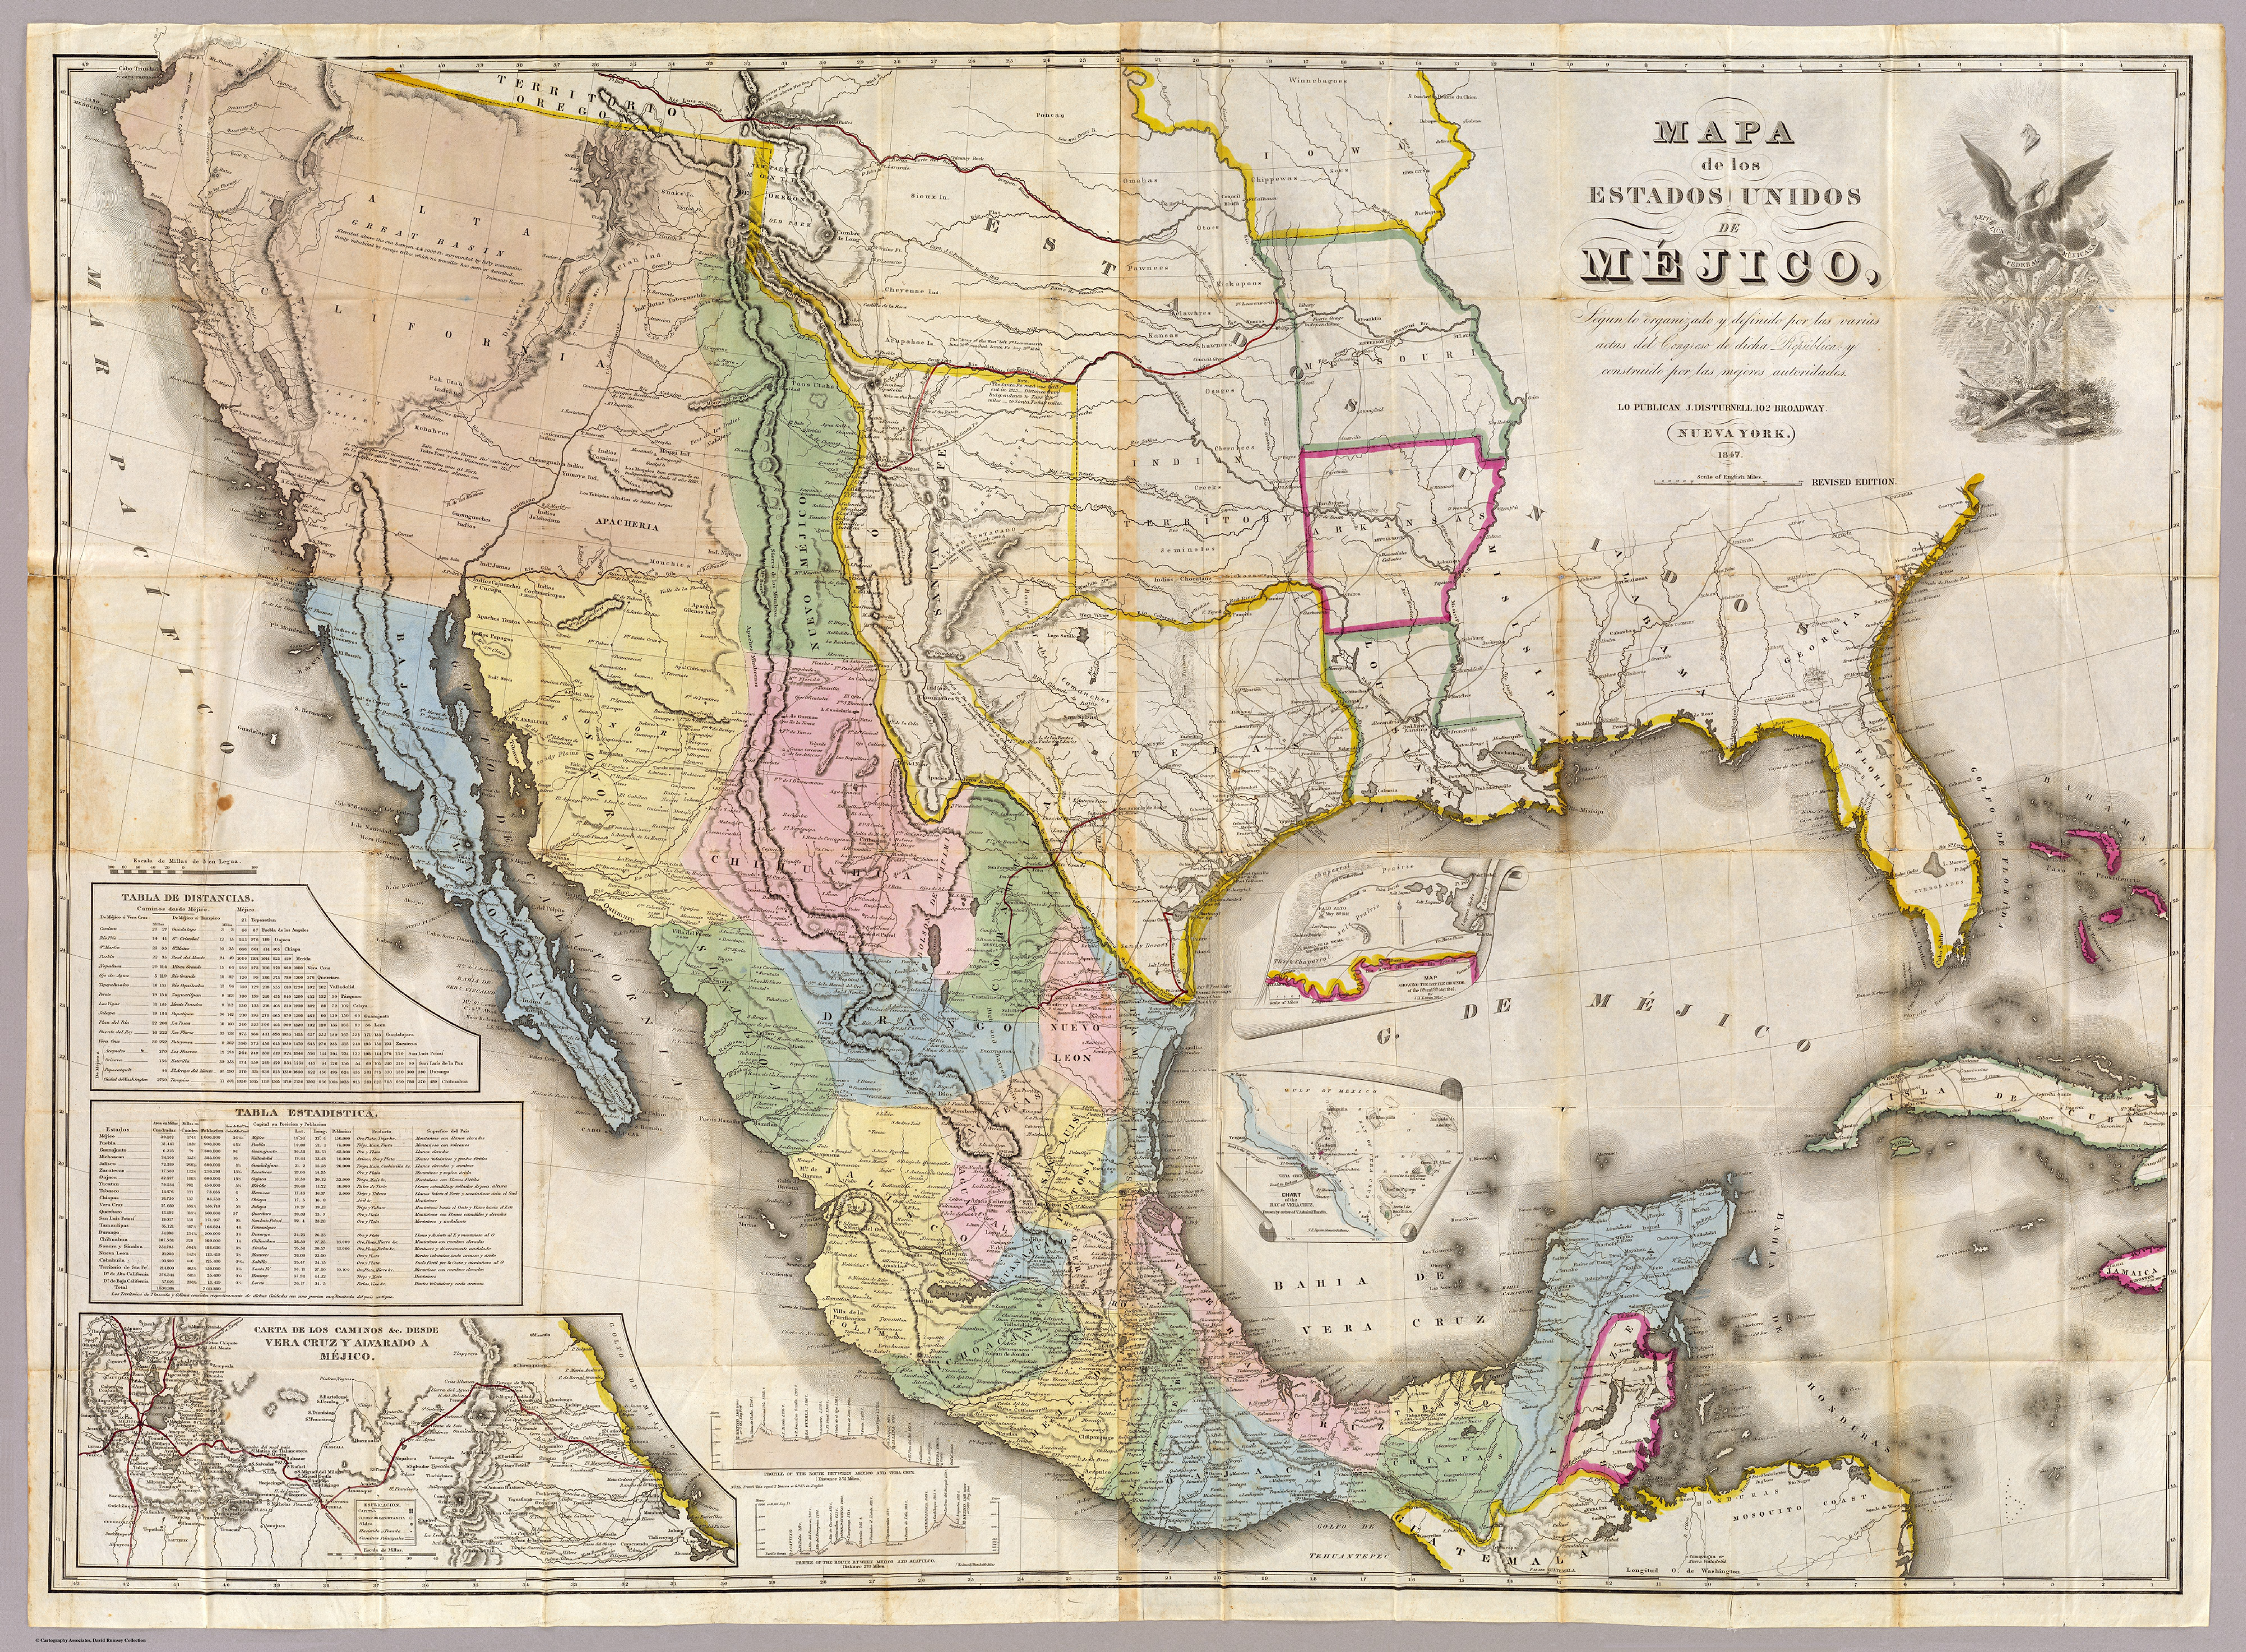 8.8 The Social and Economic Impact of the Mexican-American War in California